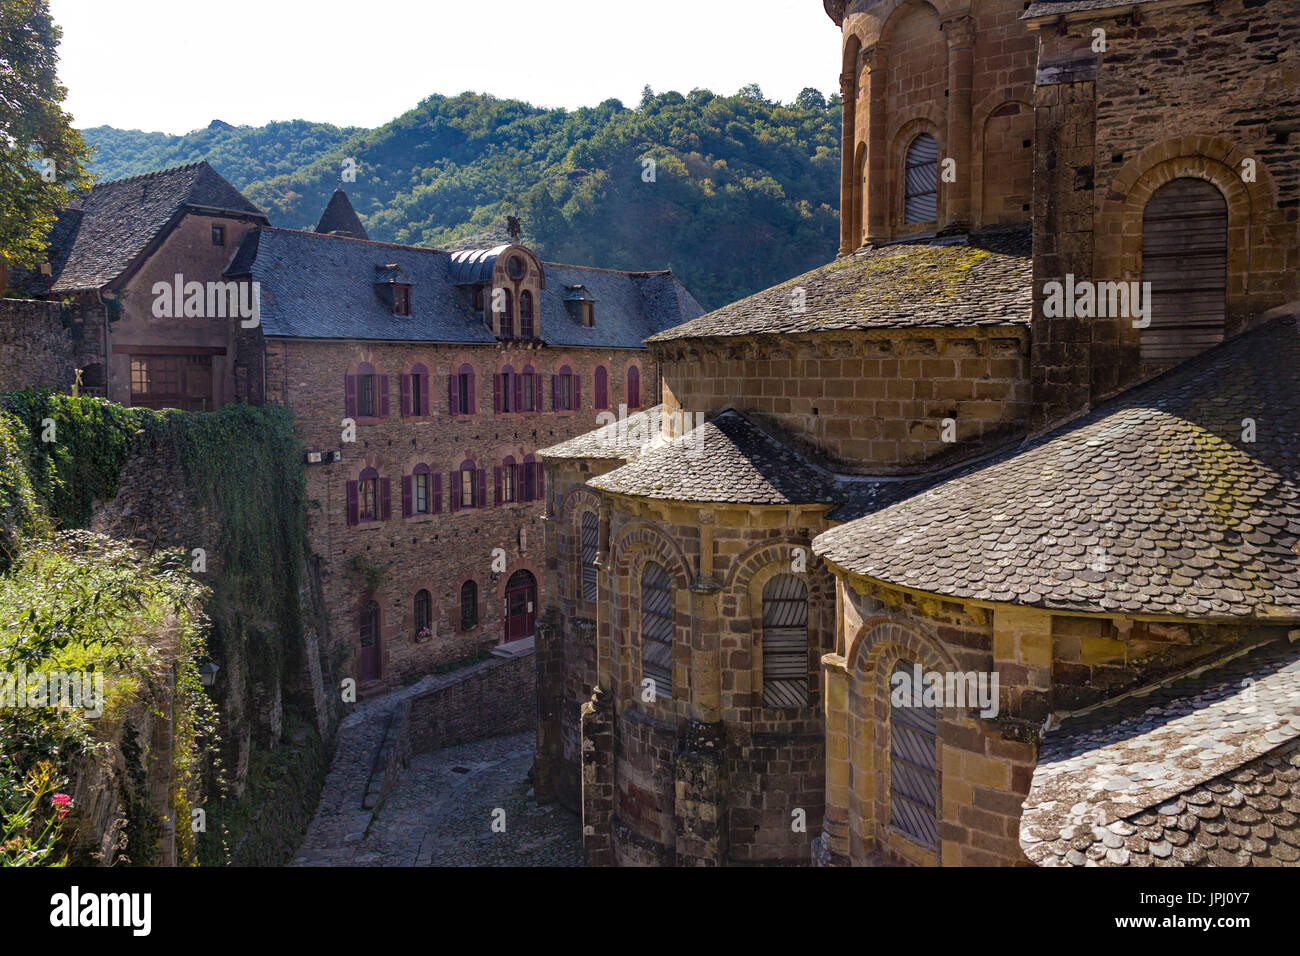 Views of the medieval village of Conques, France - Stock Image